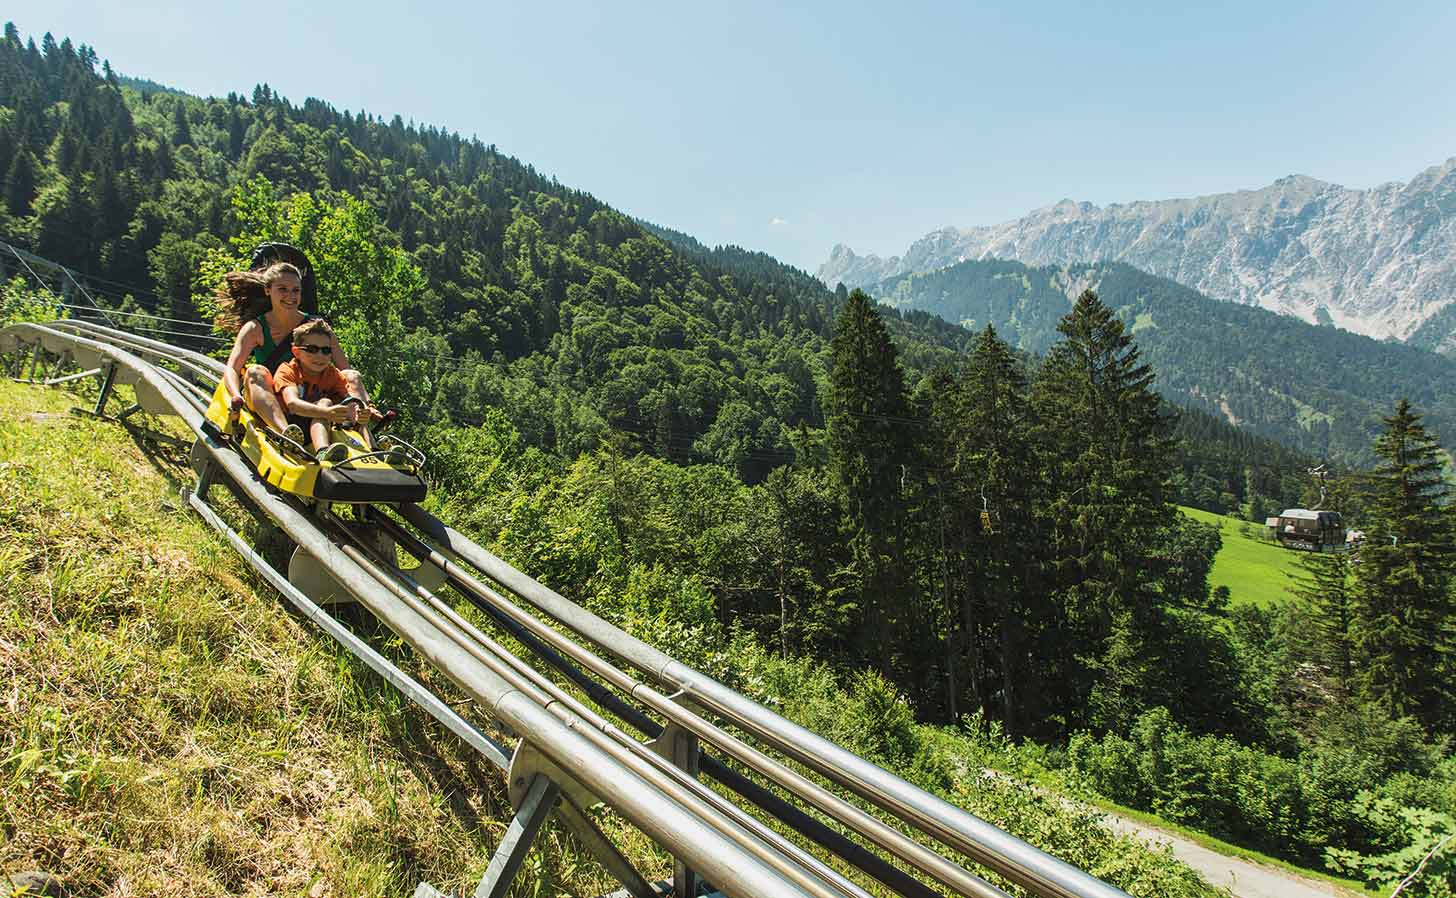 The Alpine-Coaster-Golm during summer. Photo: © Golm Silvretta Lünersee Tourismus GmbH, Christoph Schöch